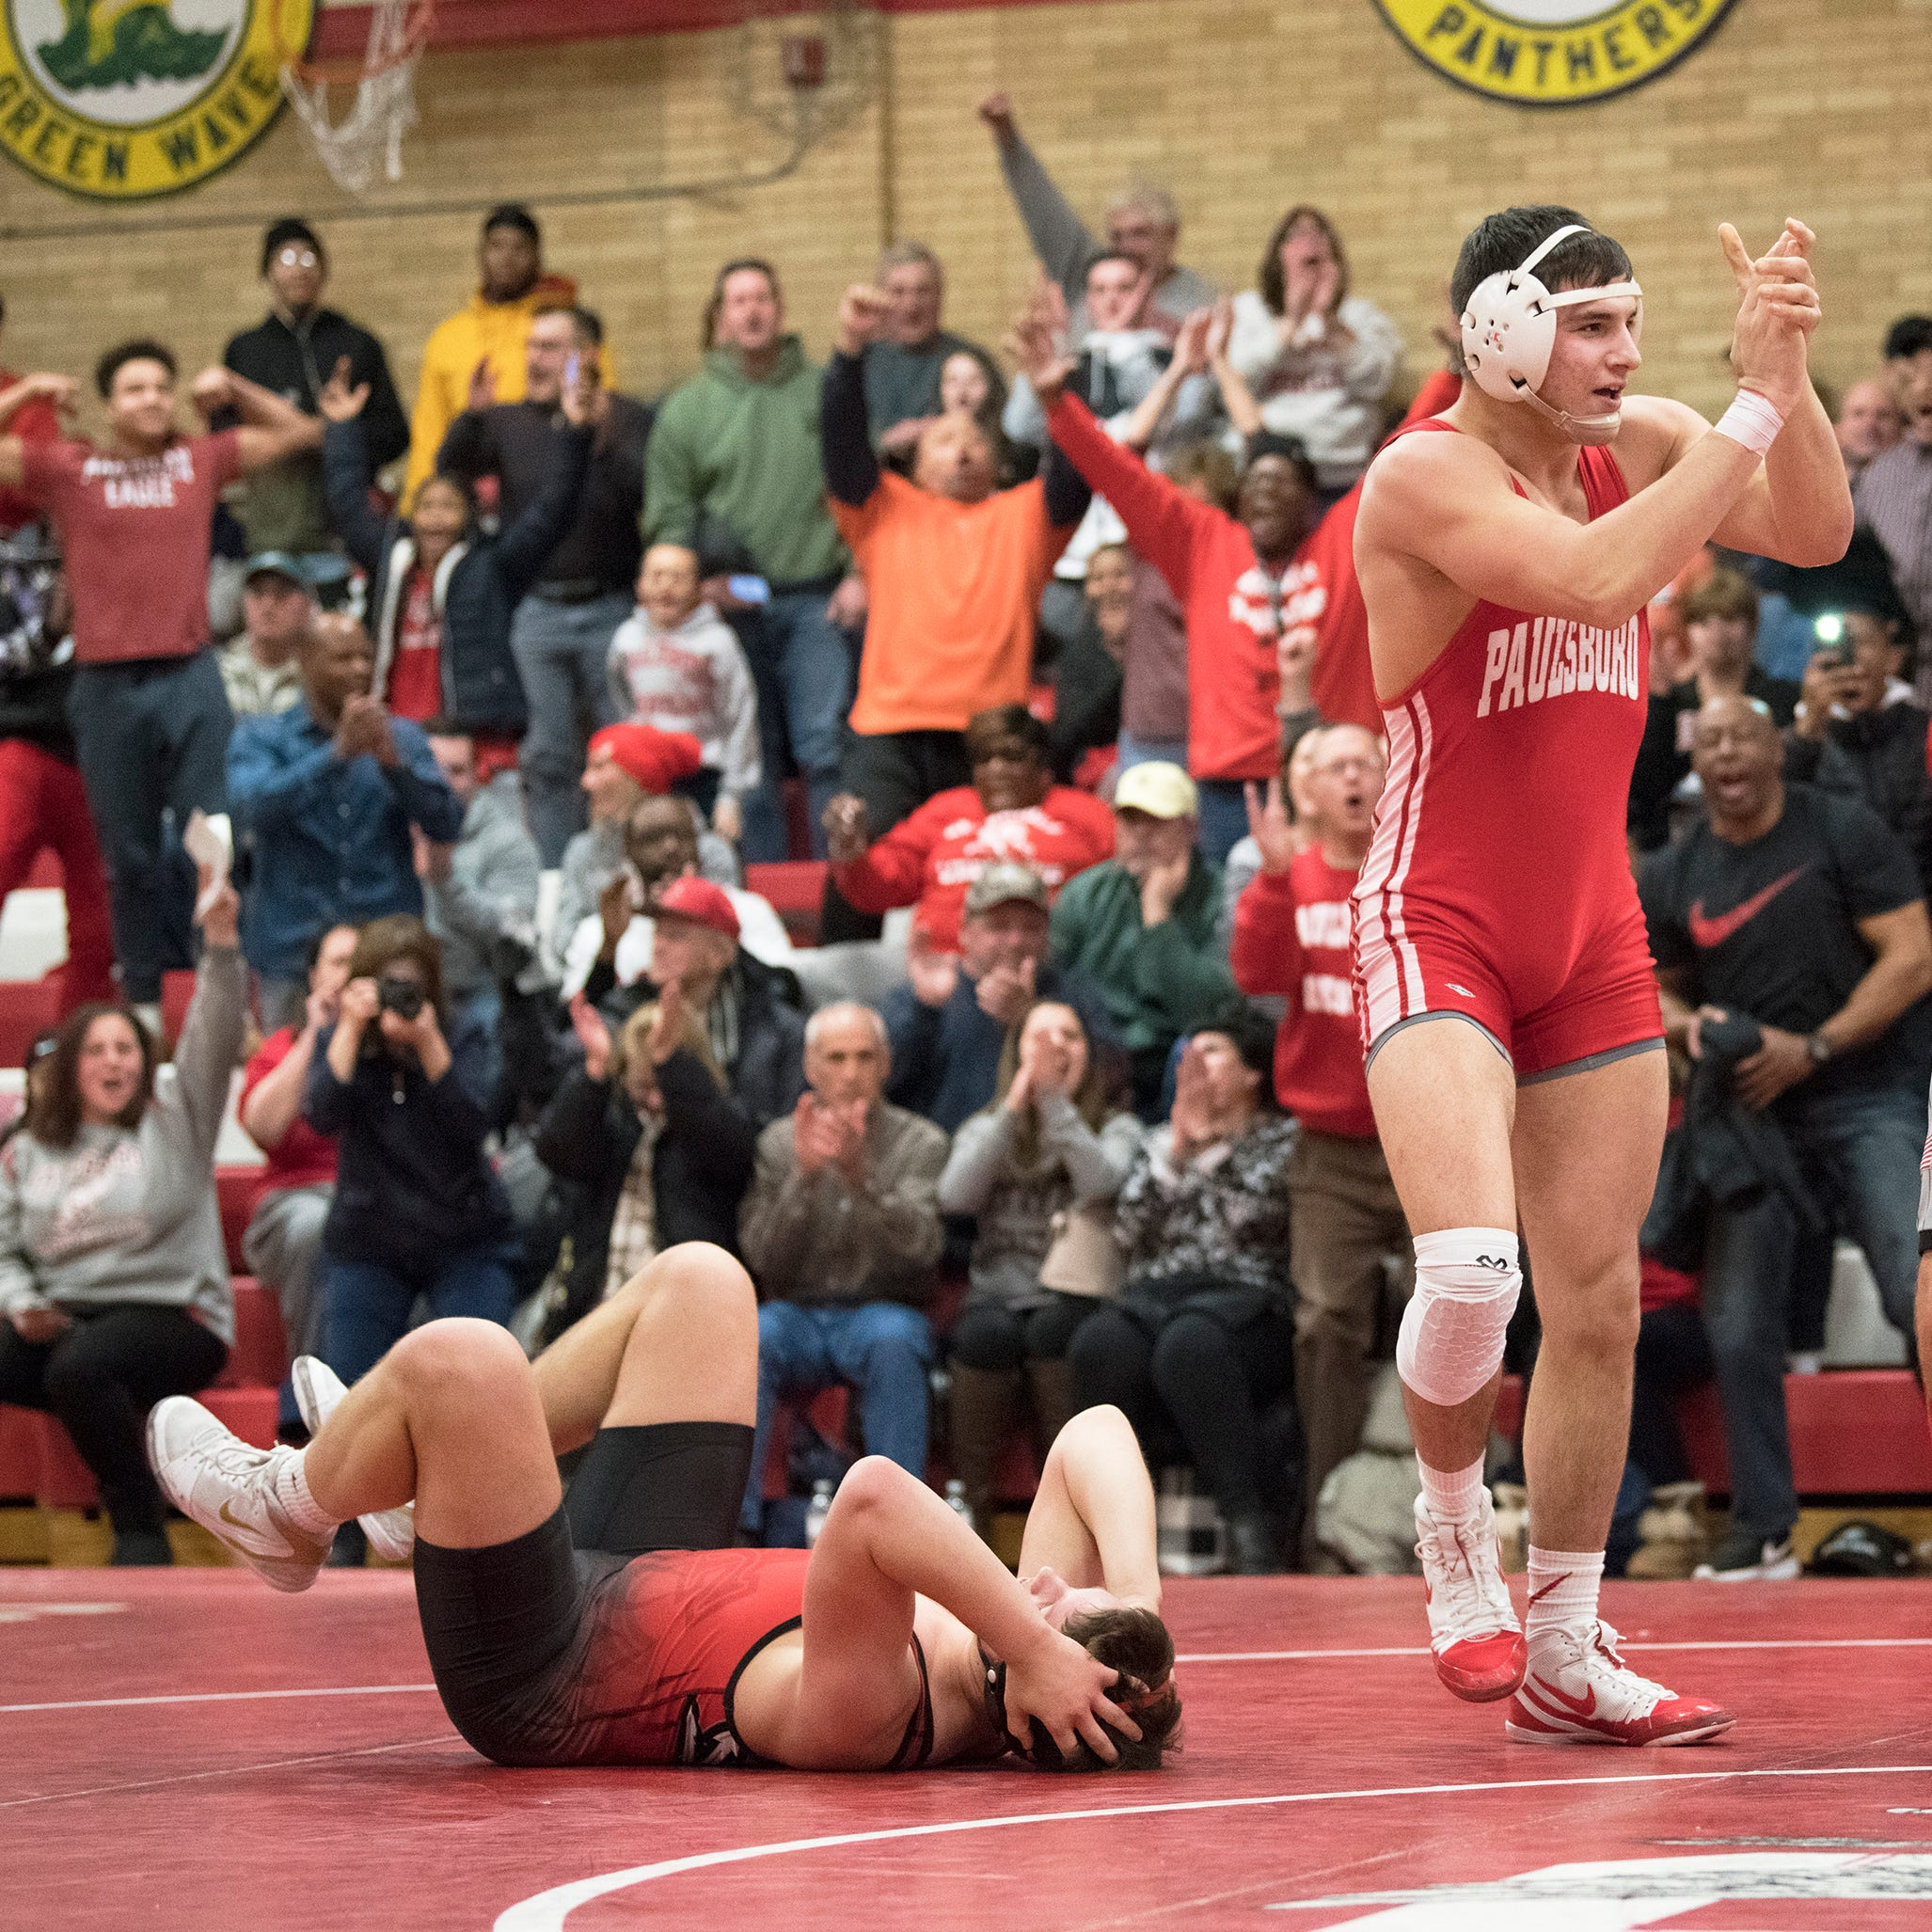 Paulsboro goes wire to wire as No. 1 wrestling team